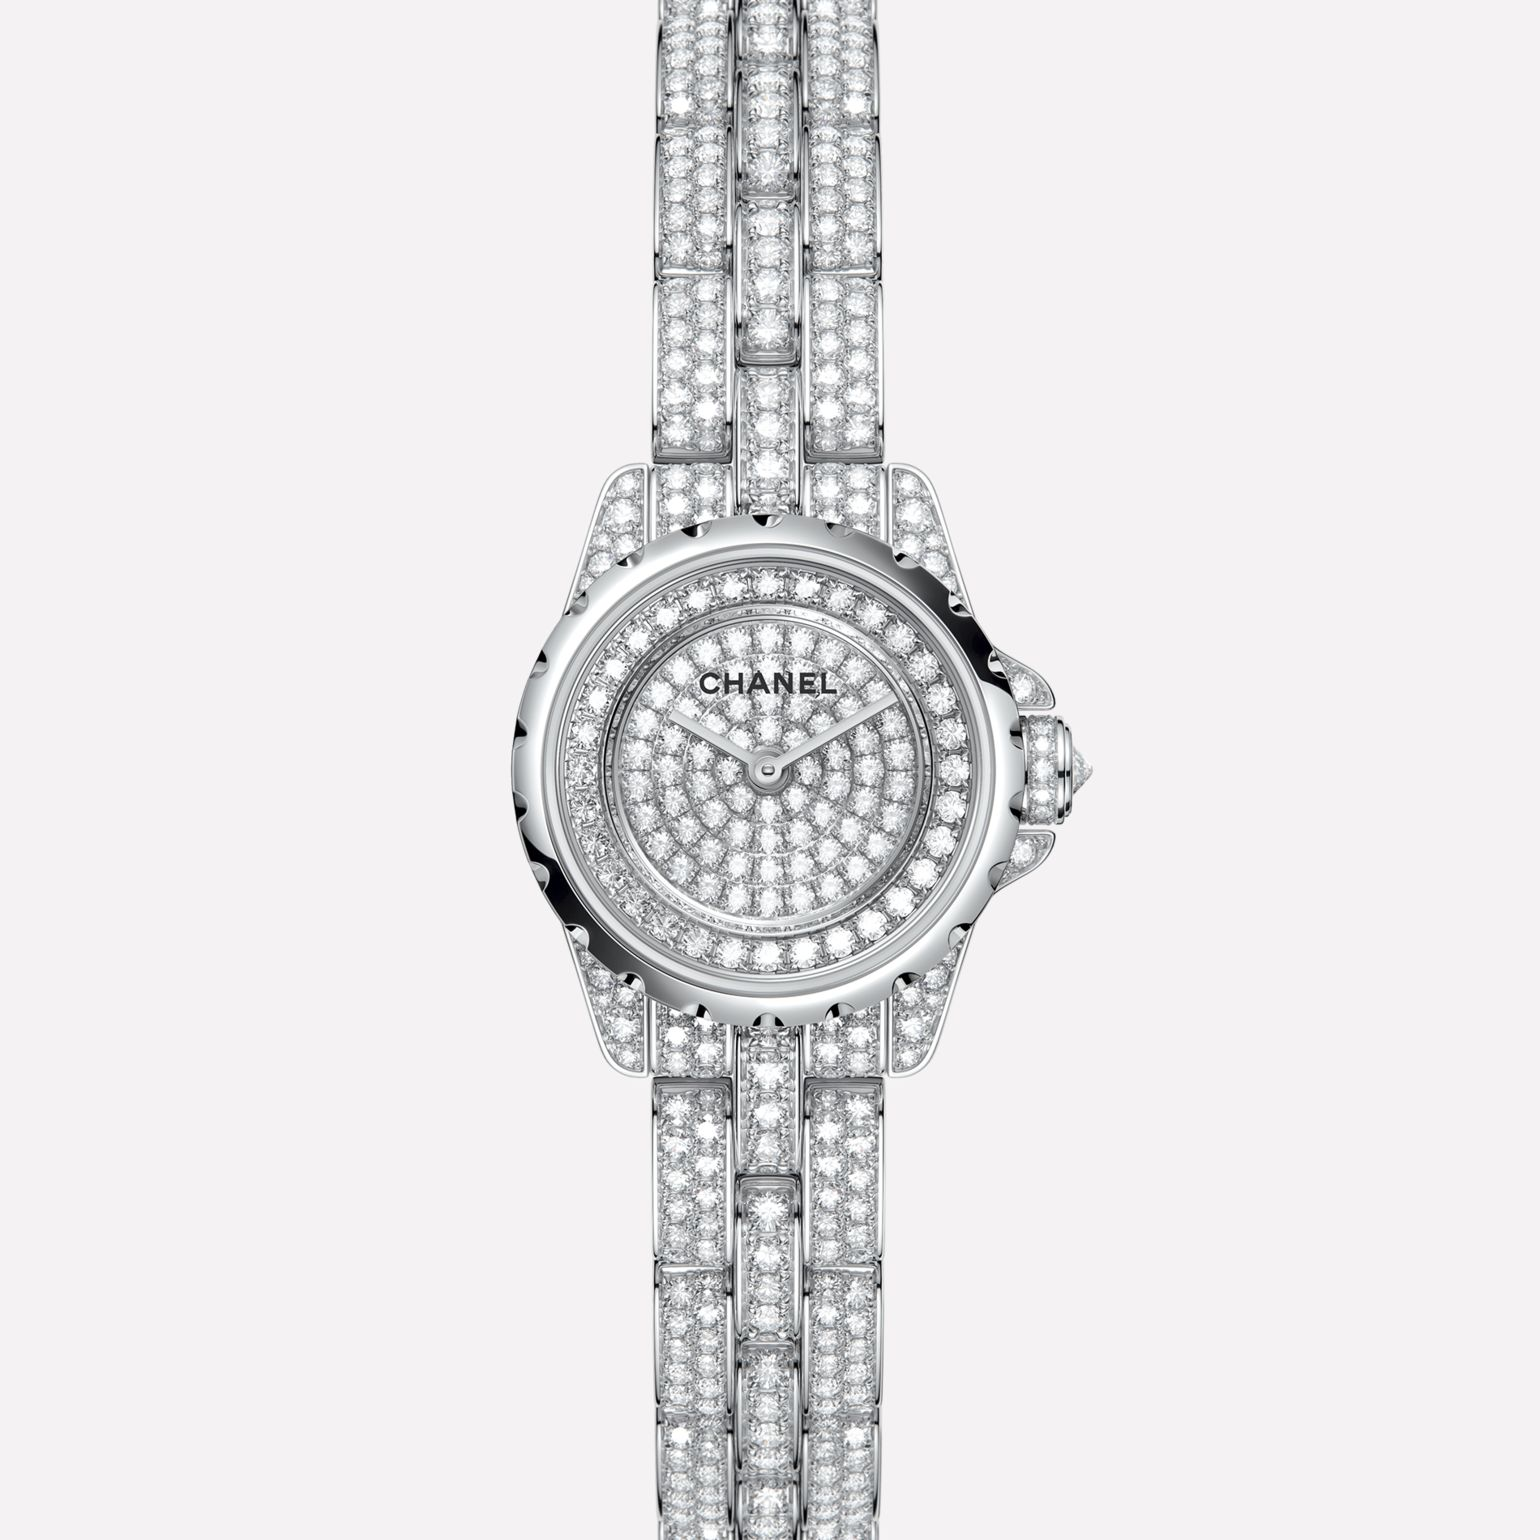 J12·XS High Jewelry Watch White gold, case, dial, bezel, and bracelet set with brilliant-cut diamonds